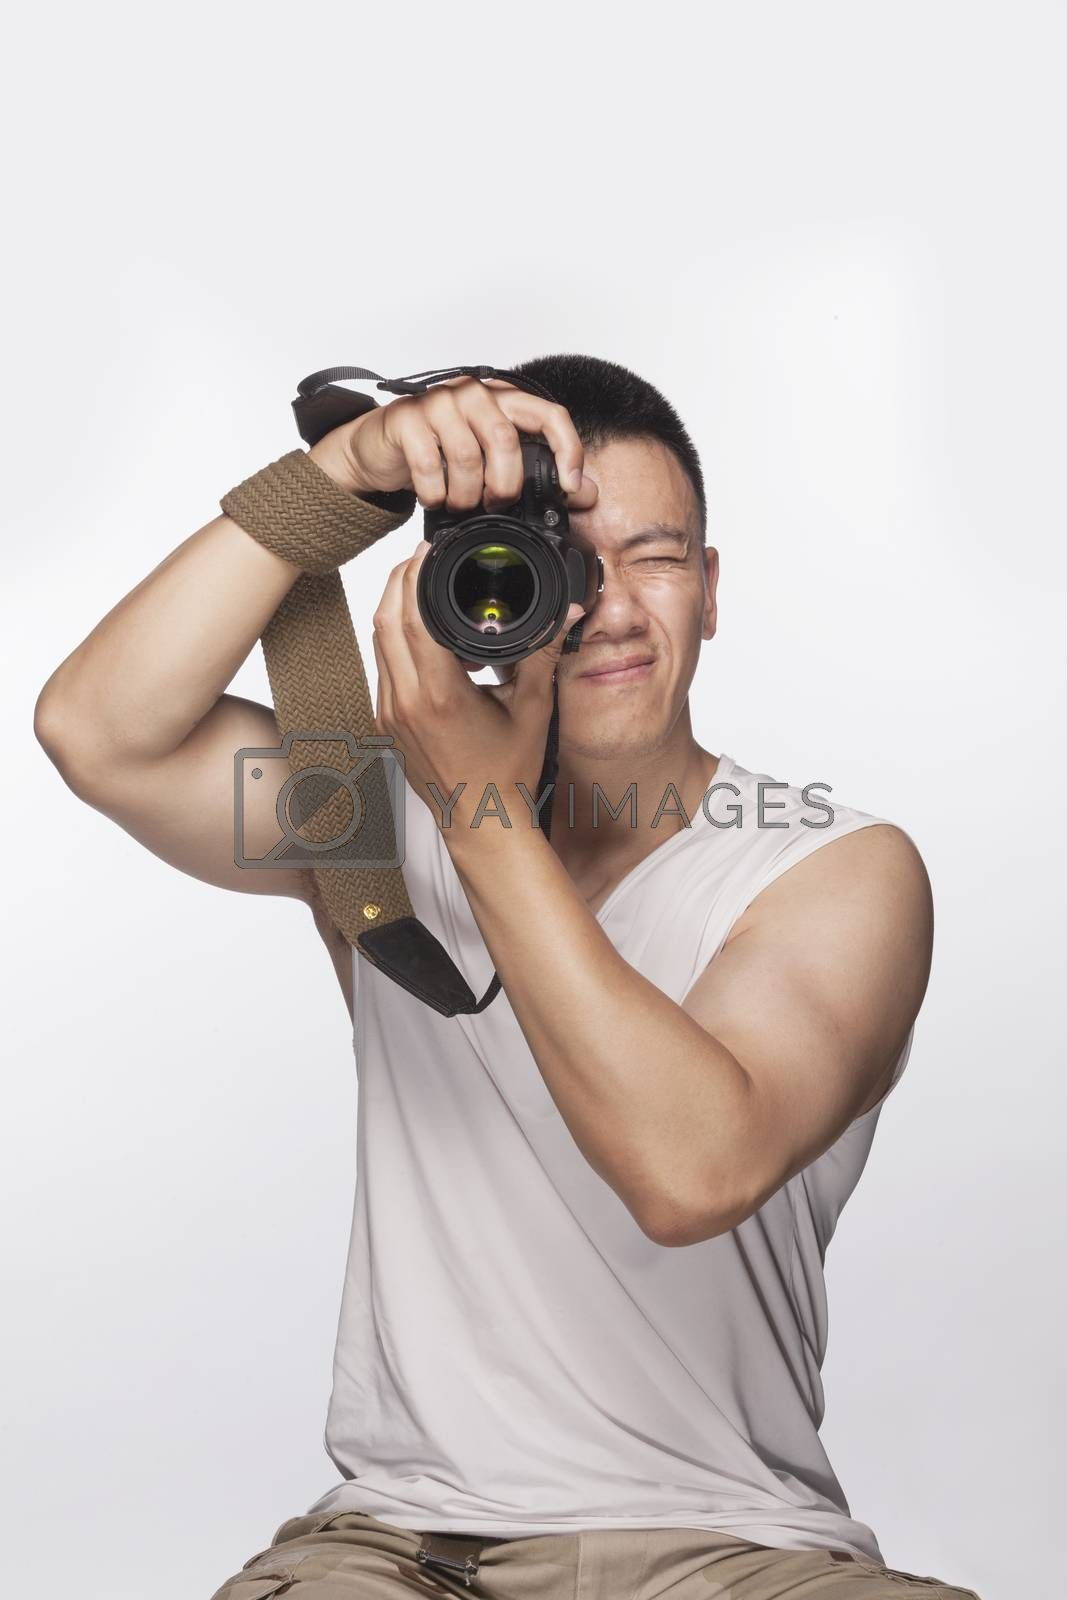 Man holding a camera and taking a photograph, studio shot by XiXinXing